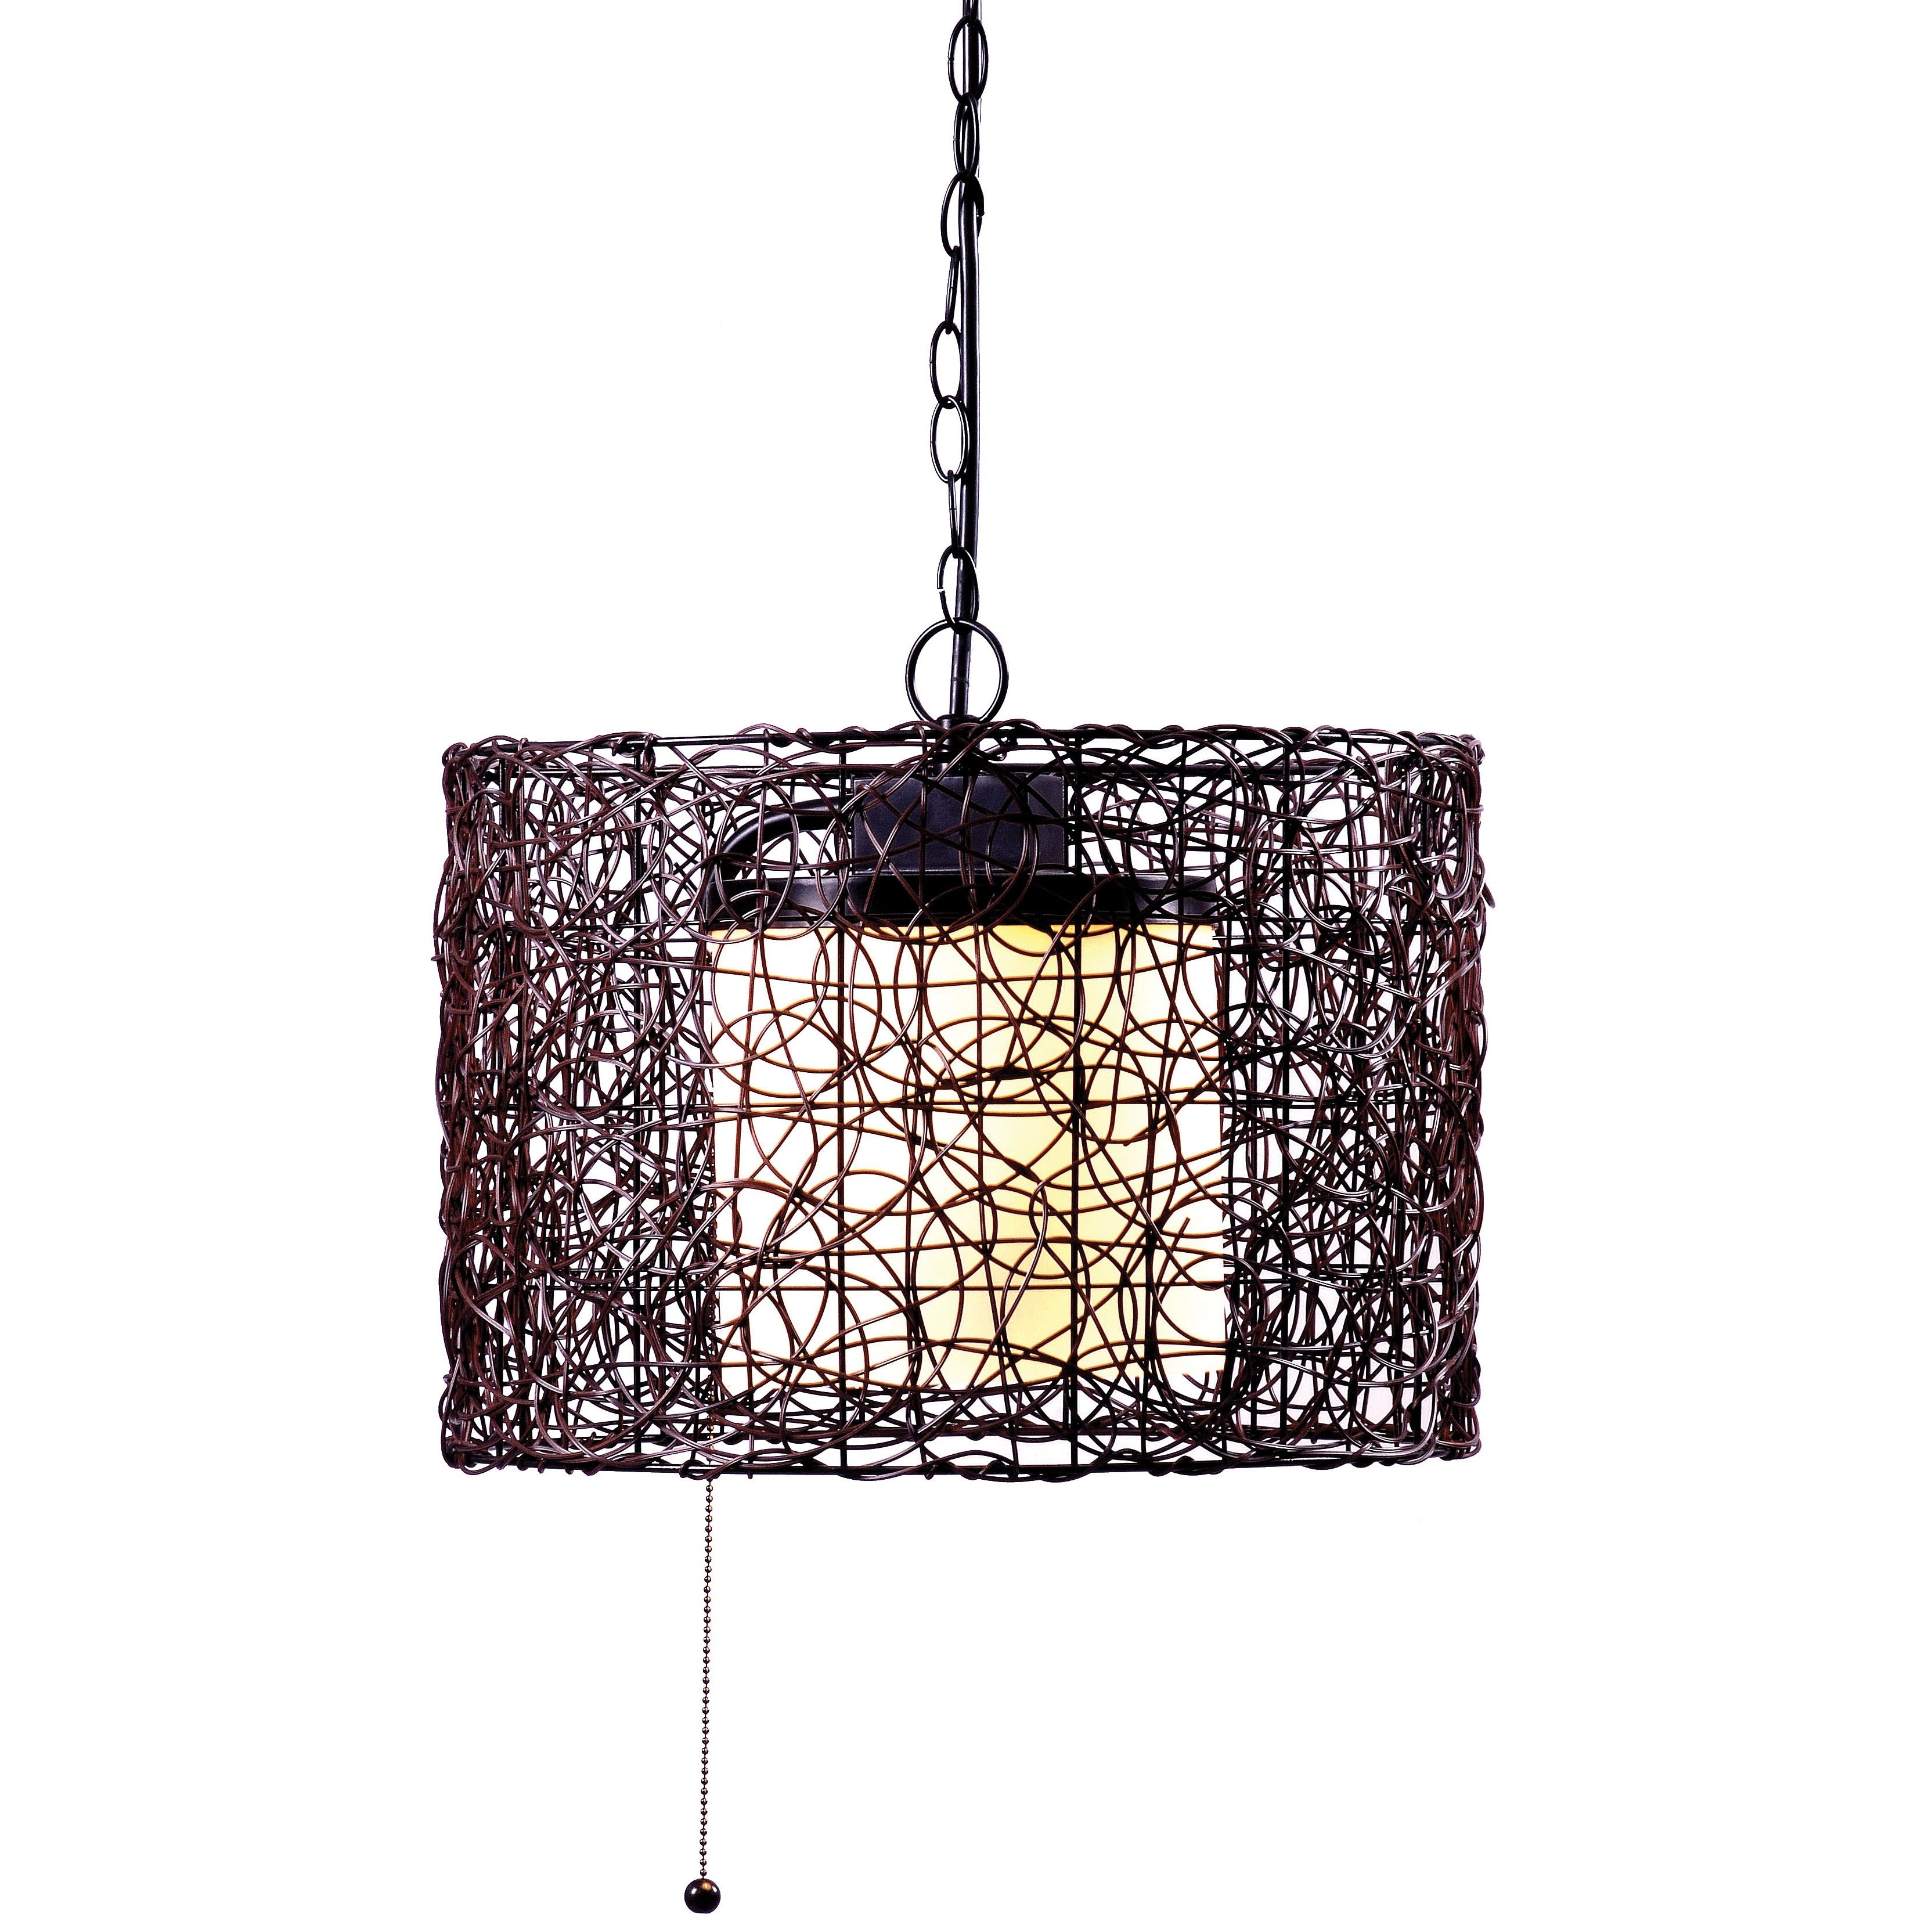 Inspiration about Rustic Outdoor Hanging Lights Wayfair Rosalind 1 Light Pendant Within Rustic Outdoor Lighting At Wayfair (#13 of 15)